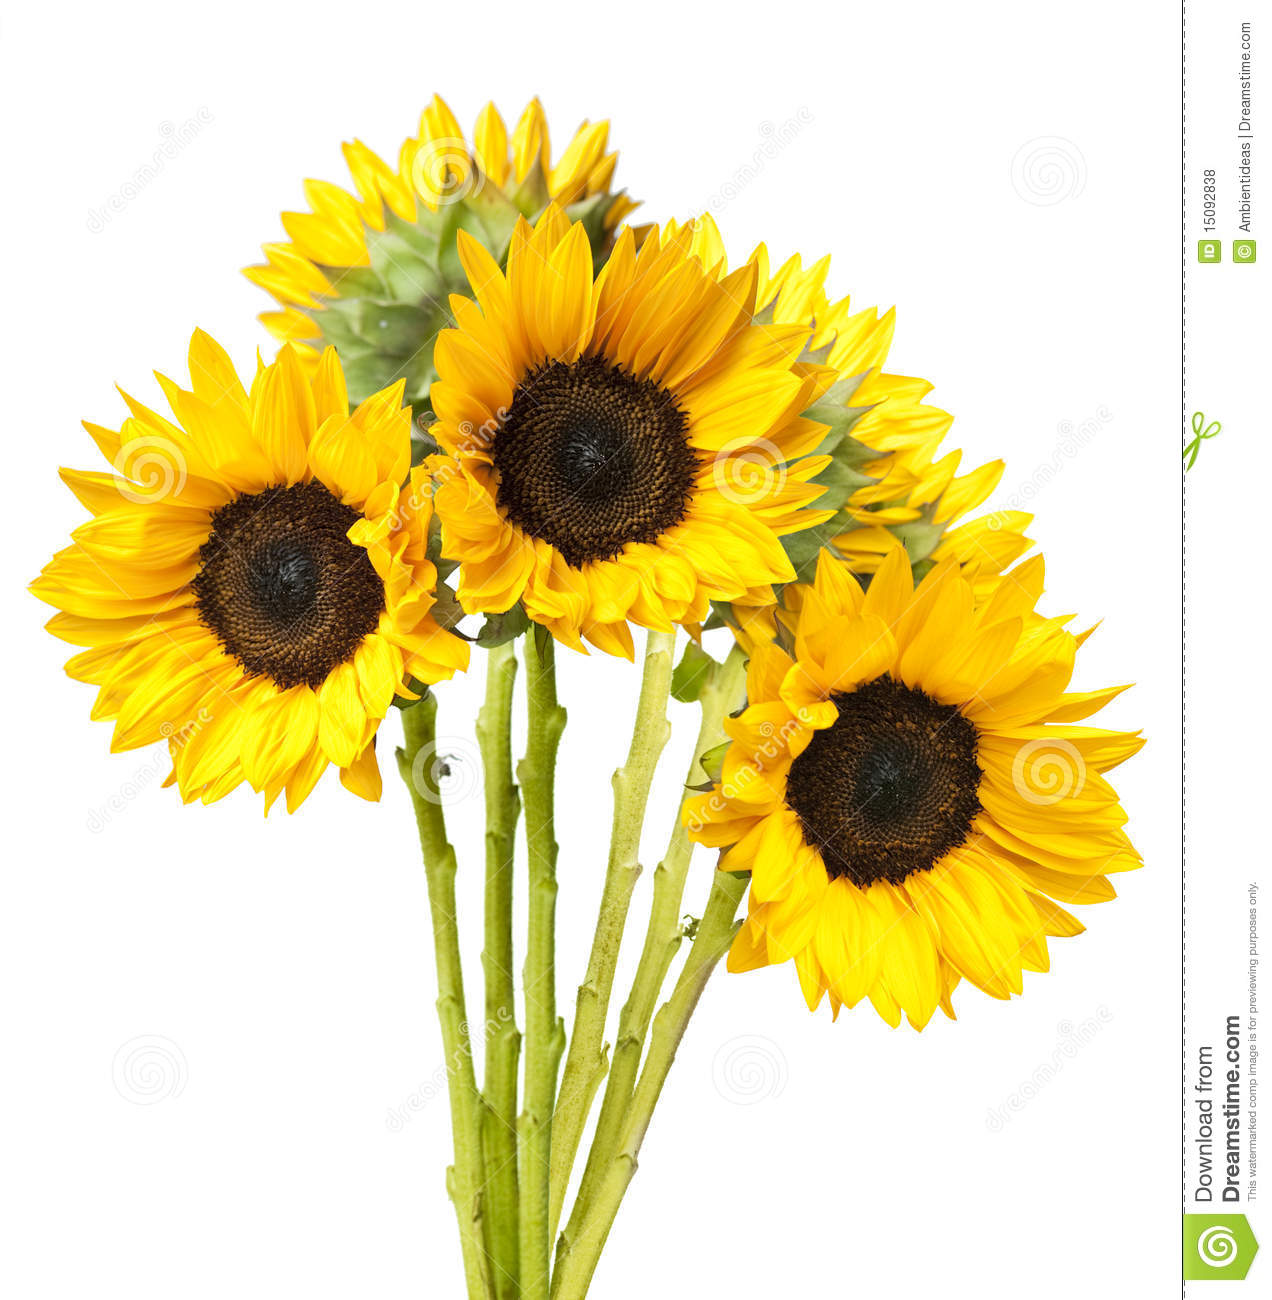 Sunflower Bouquet Isolated On White Royalty Free Stock Photos - Image ...